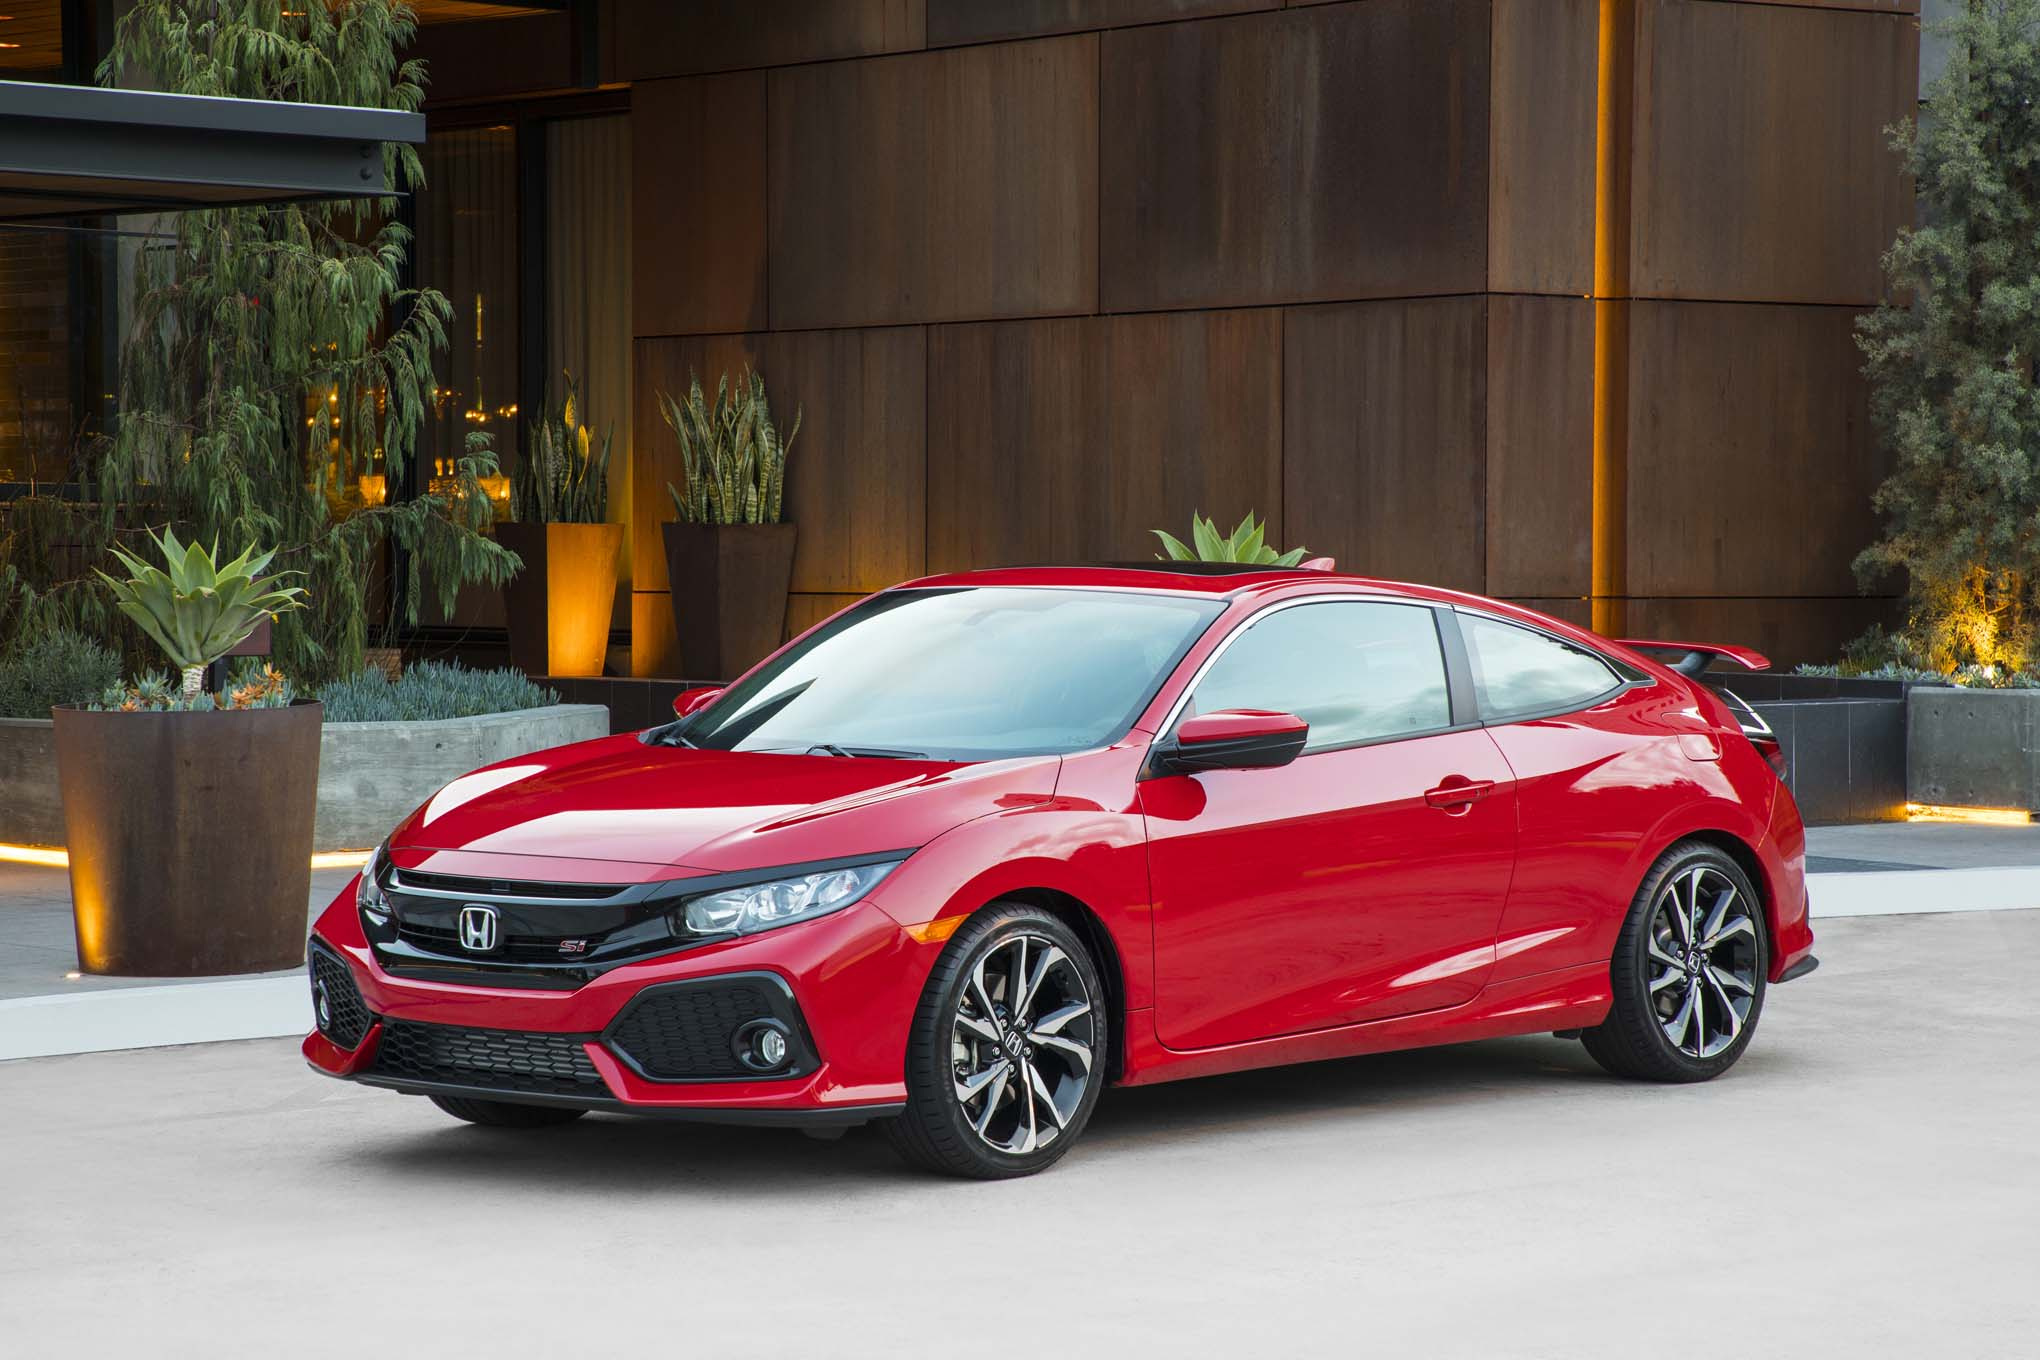 2017 Civic Si Specs >> Honda Limited 2017 Civic Si Power to Increase Engine ...